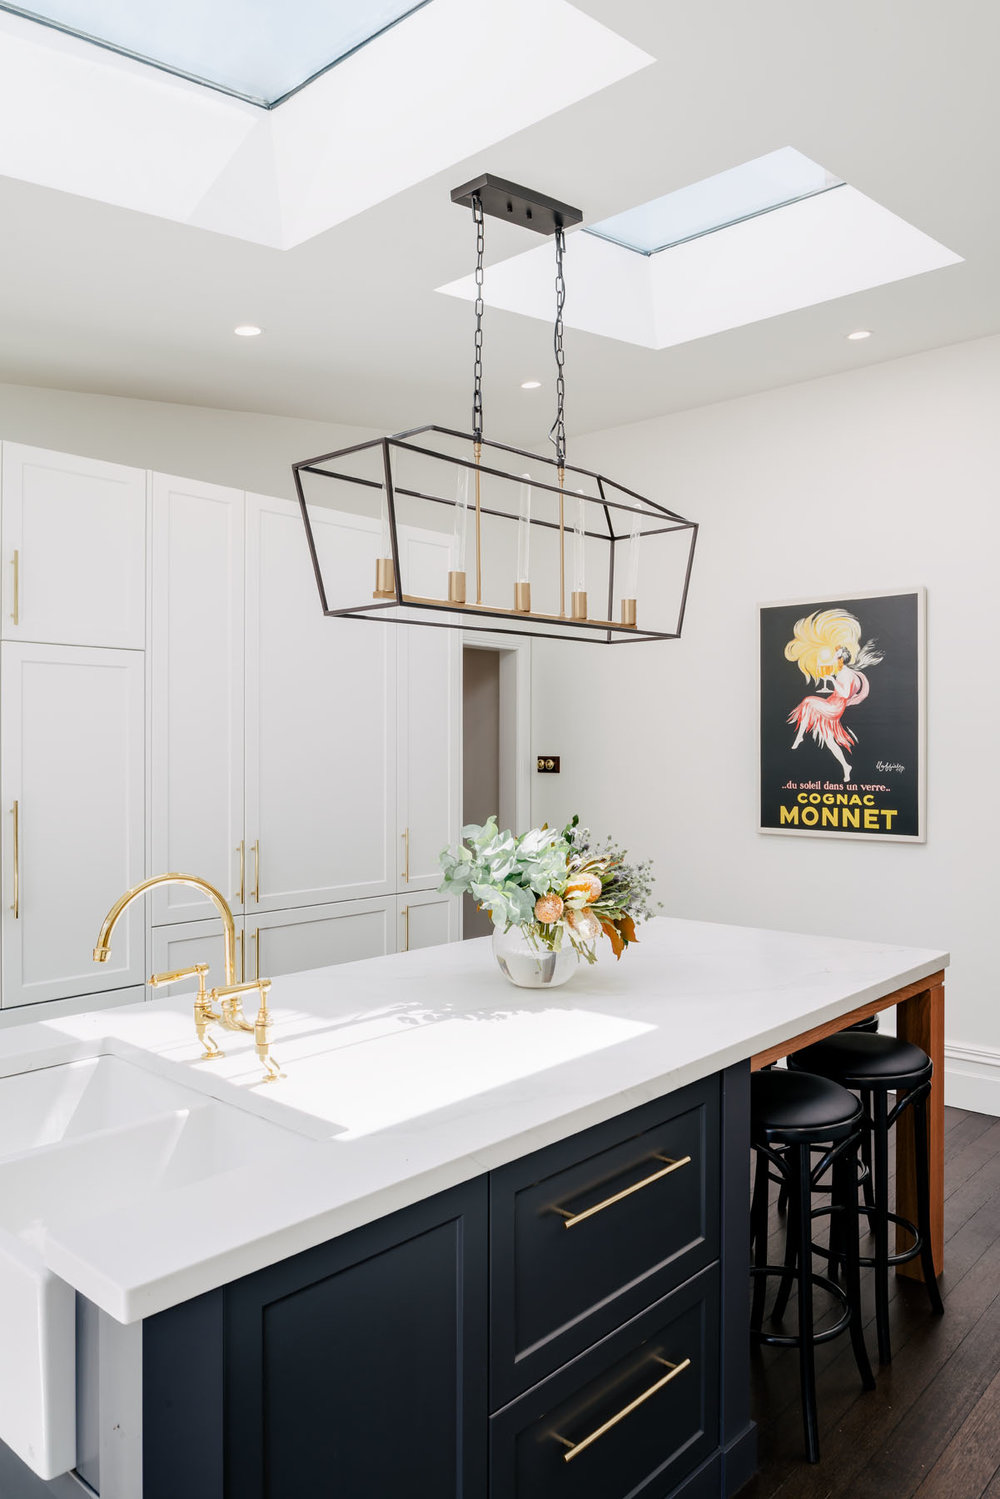 MaskiellDesign_Kitchen_Feb2018_06.jpg